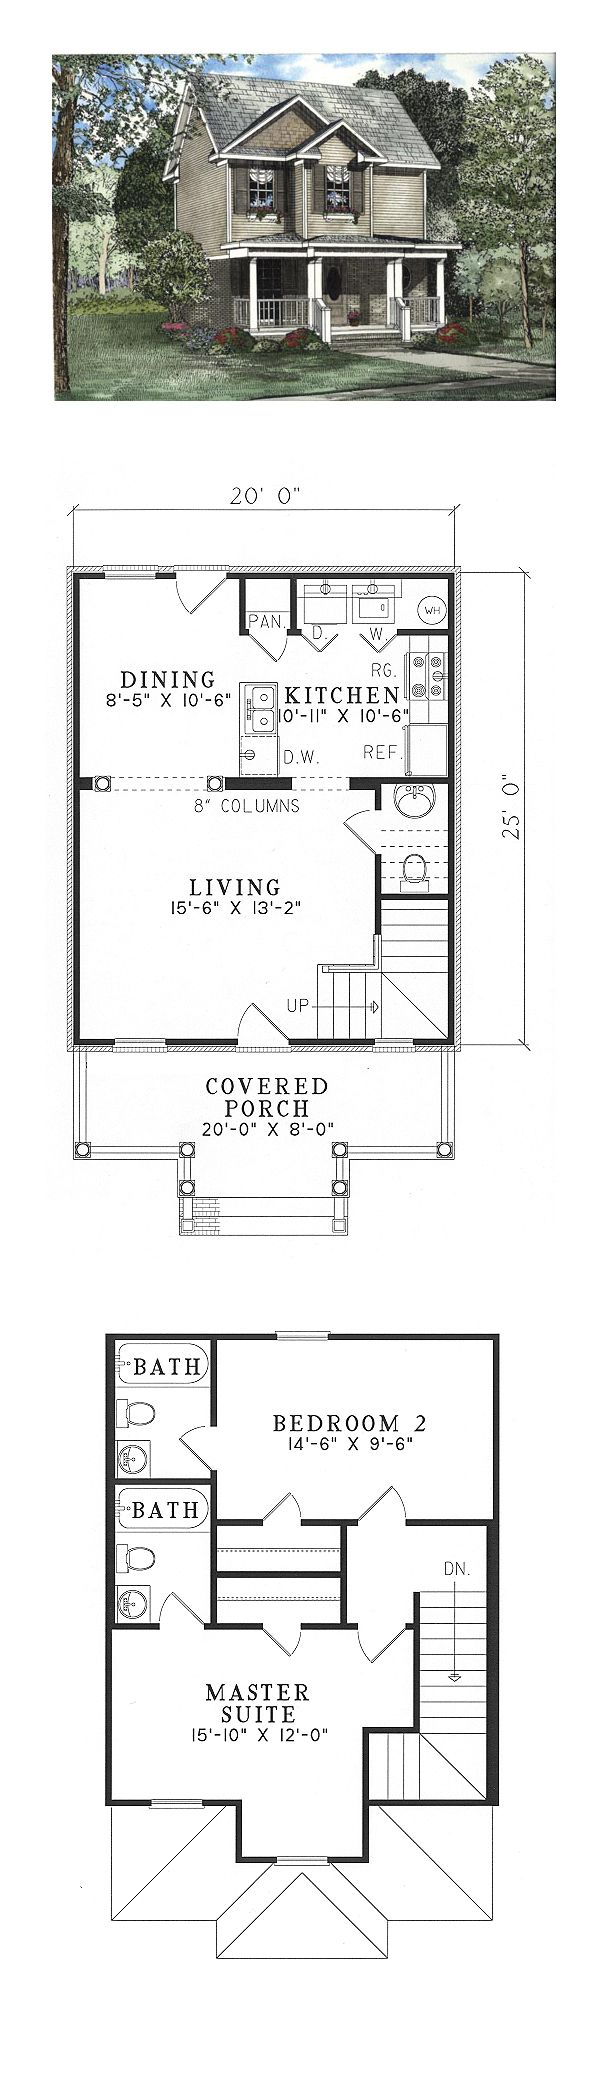 Best 25 Narrow Lot House Plans Ideas On Pinterest: house floor plans narrow lot